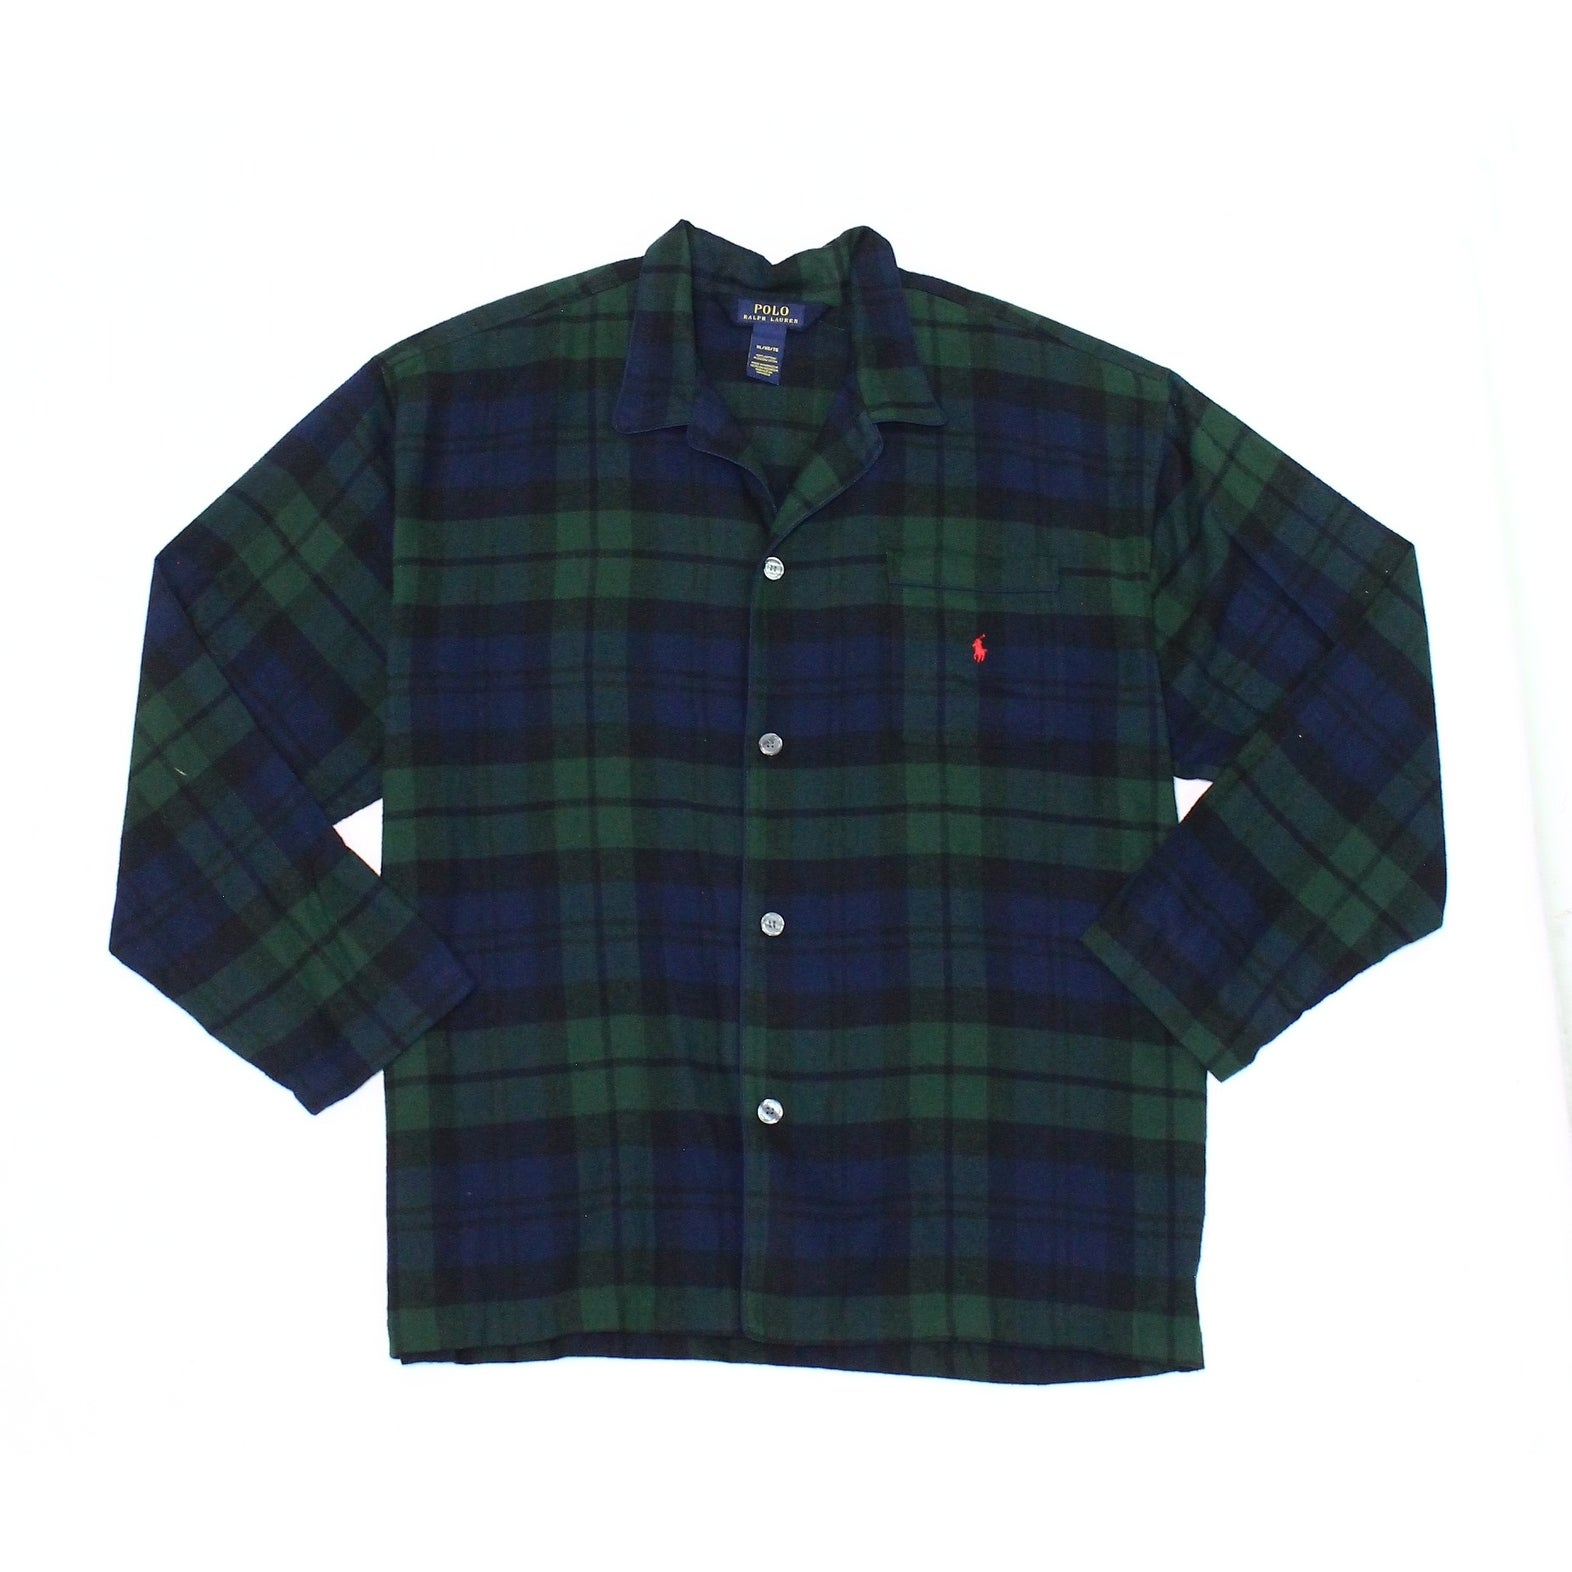 9a3ef0a5 Shop Polo Ralph Lauren NEW Green Mens Size XL Plaid Flannel Pajama Shirt -  Free Shipping On Orders Over $45 - Overstock - 19795868